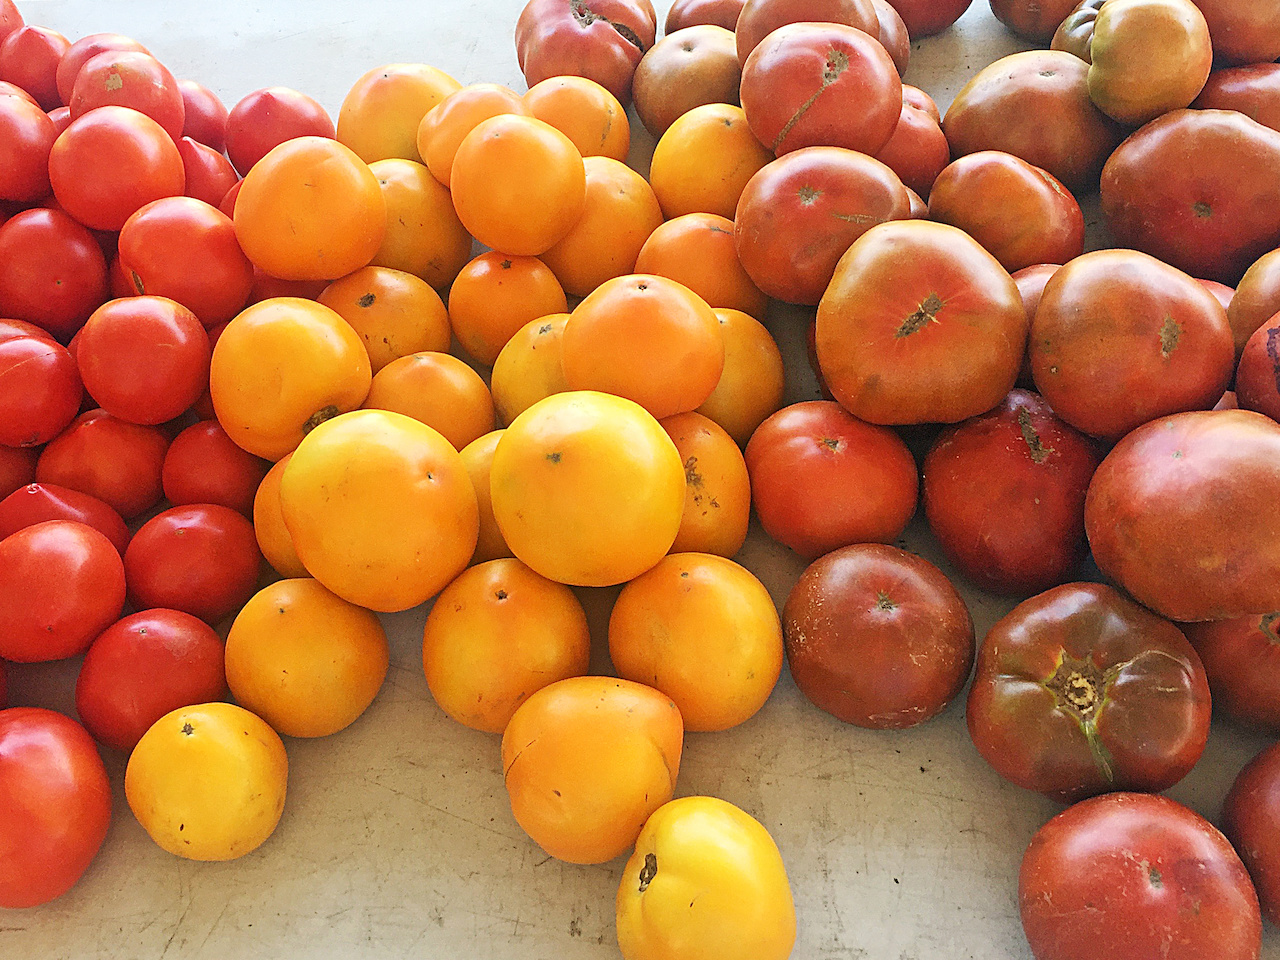 Gorgeous Ripley tomatoes from Ripley Produce, $2.49/lb.